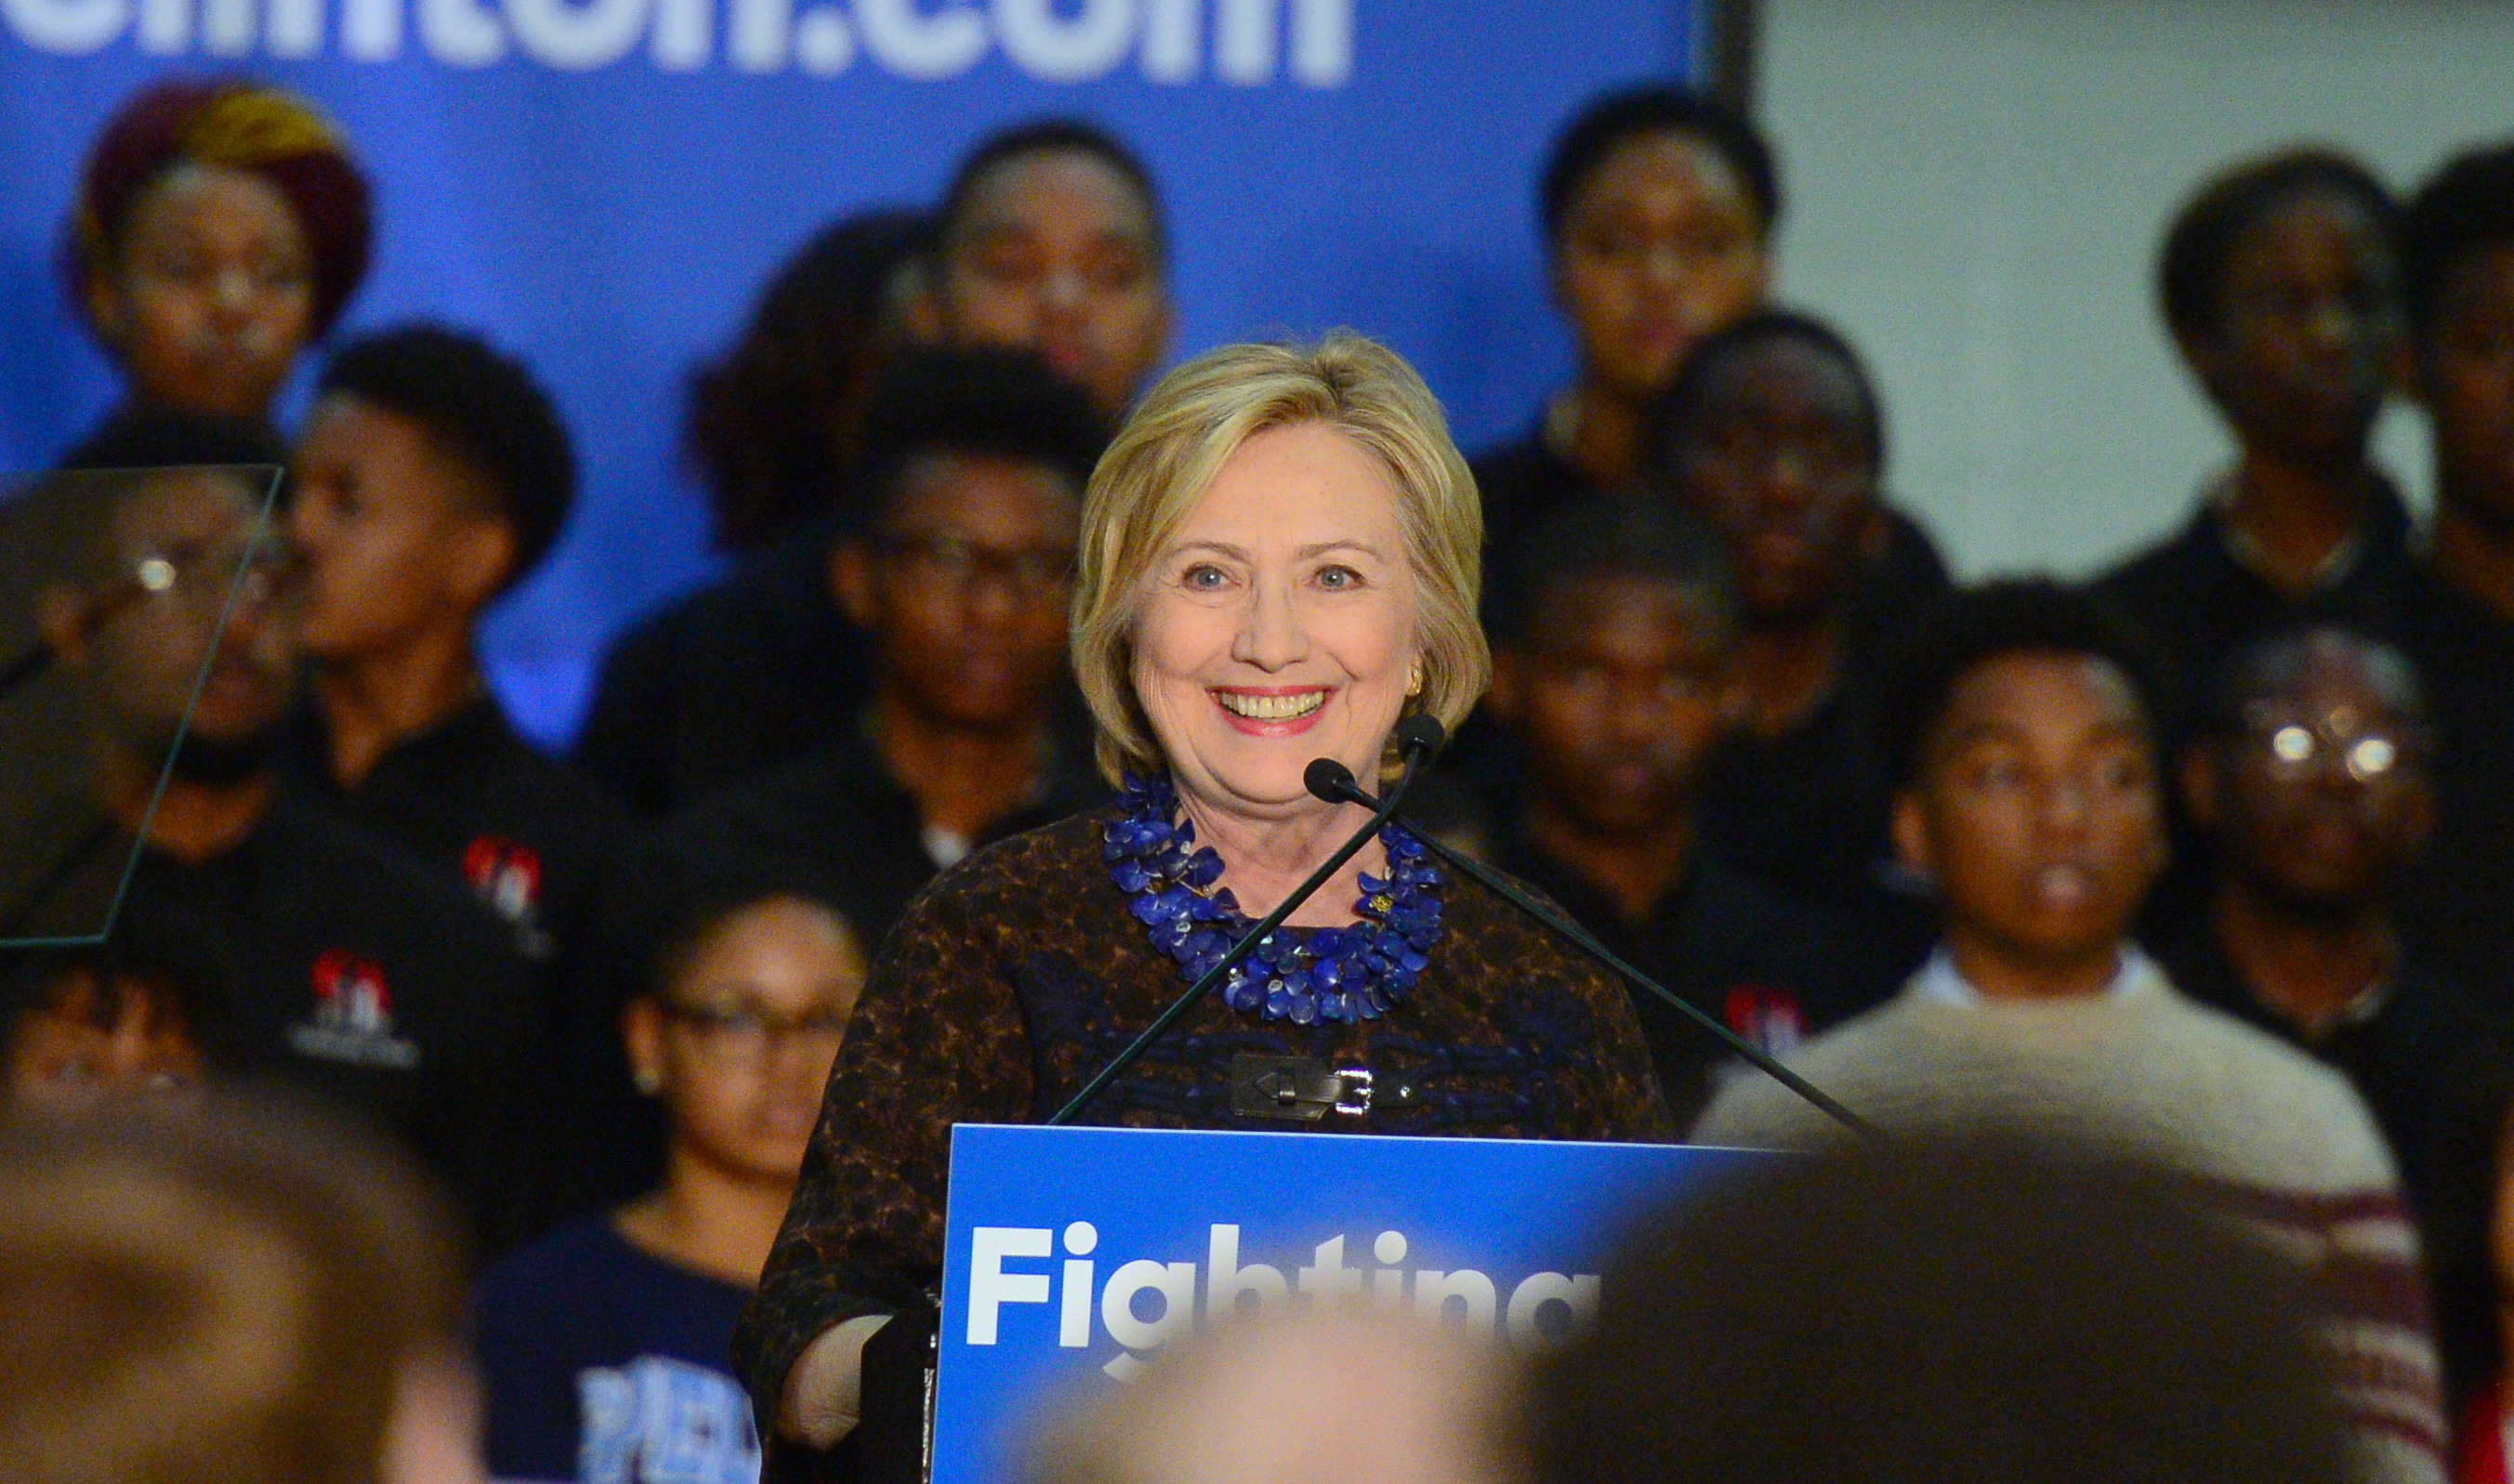 Hillary Clinton Speaks to Supporters during the  African Americans for Hillary Grassroots Organizing Meeting with Hillary Clinton  in Atlanta, GA, on Oct. 30, 2015.